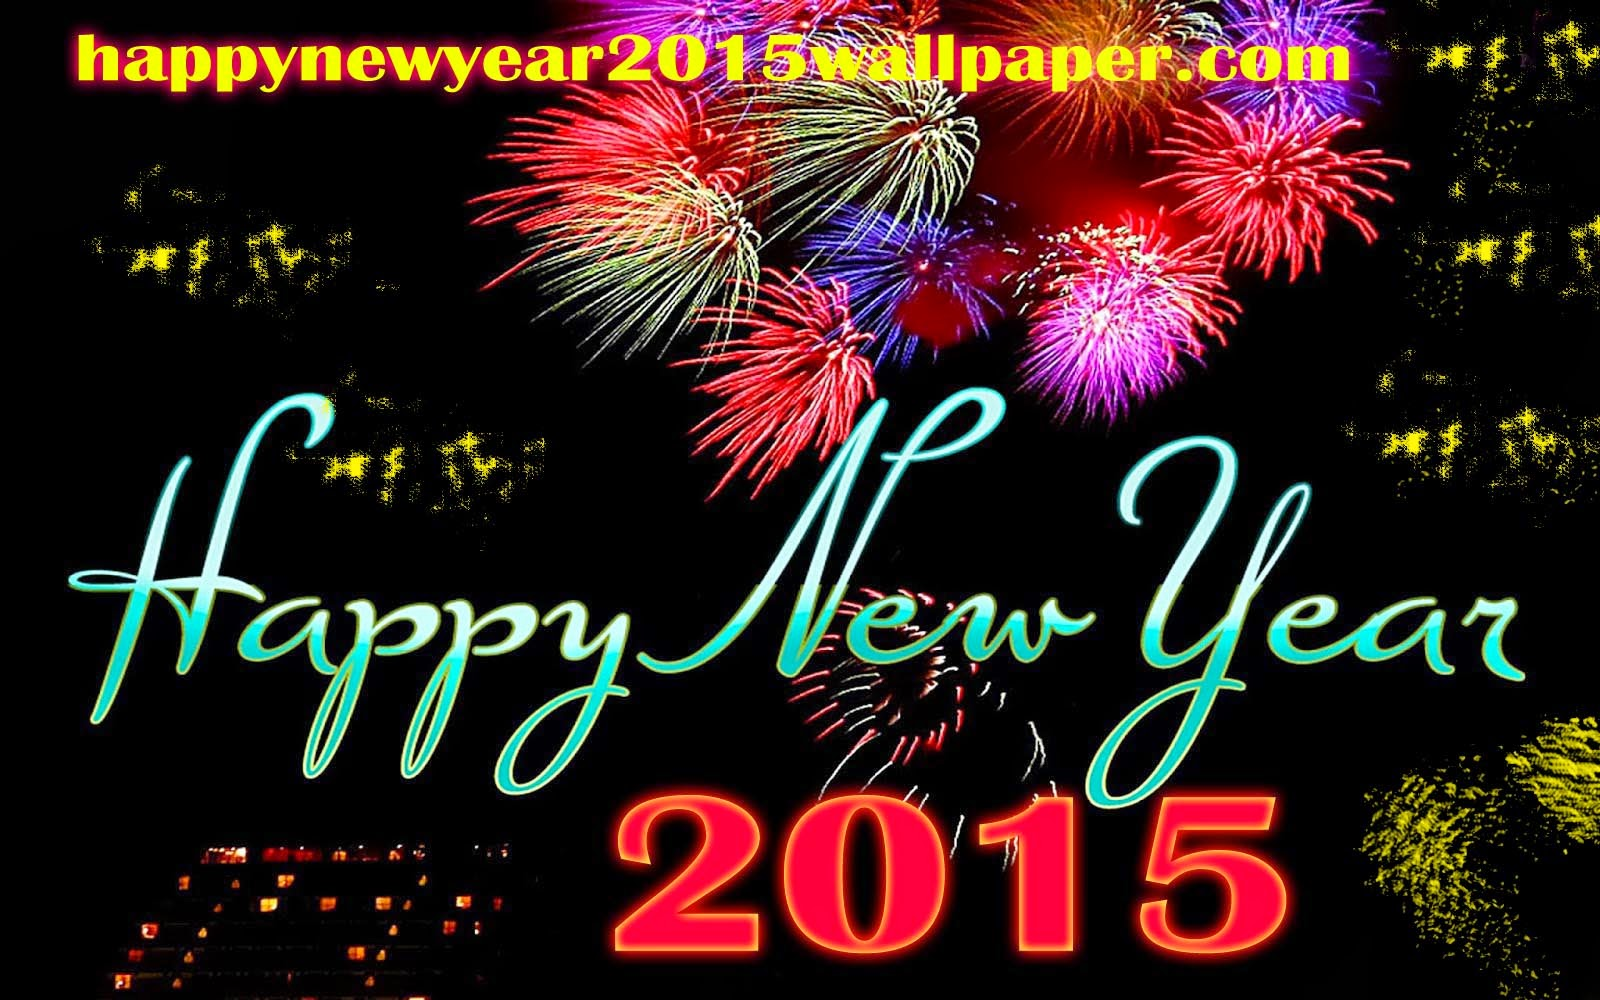 Happy New Year Eve Text Messages 2015 Happy New Year 2015 Wallpaper